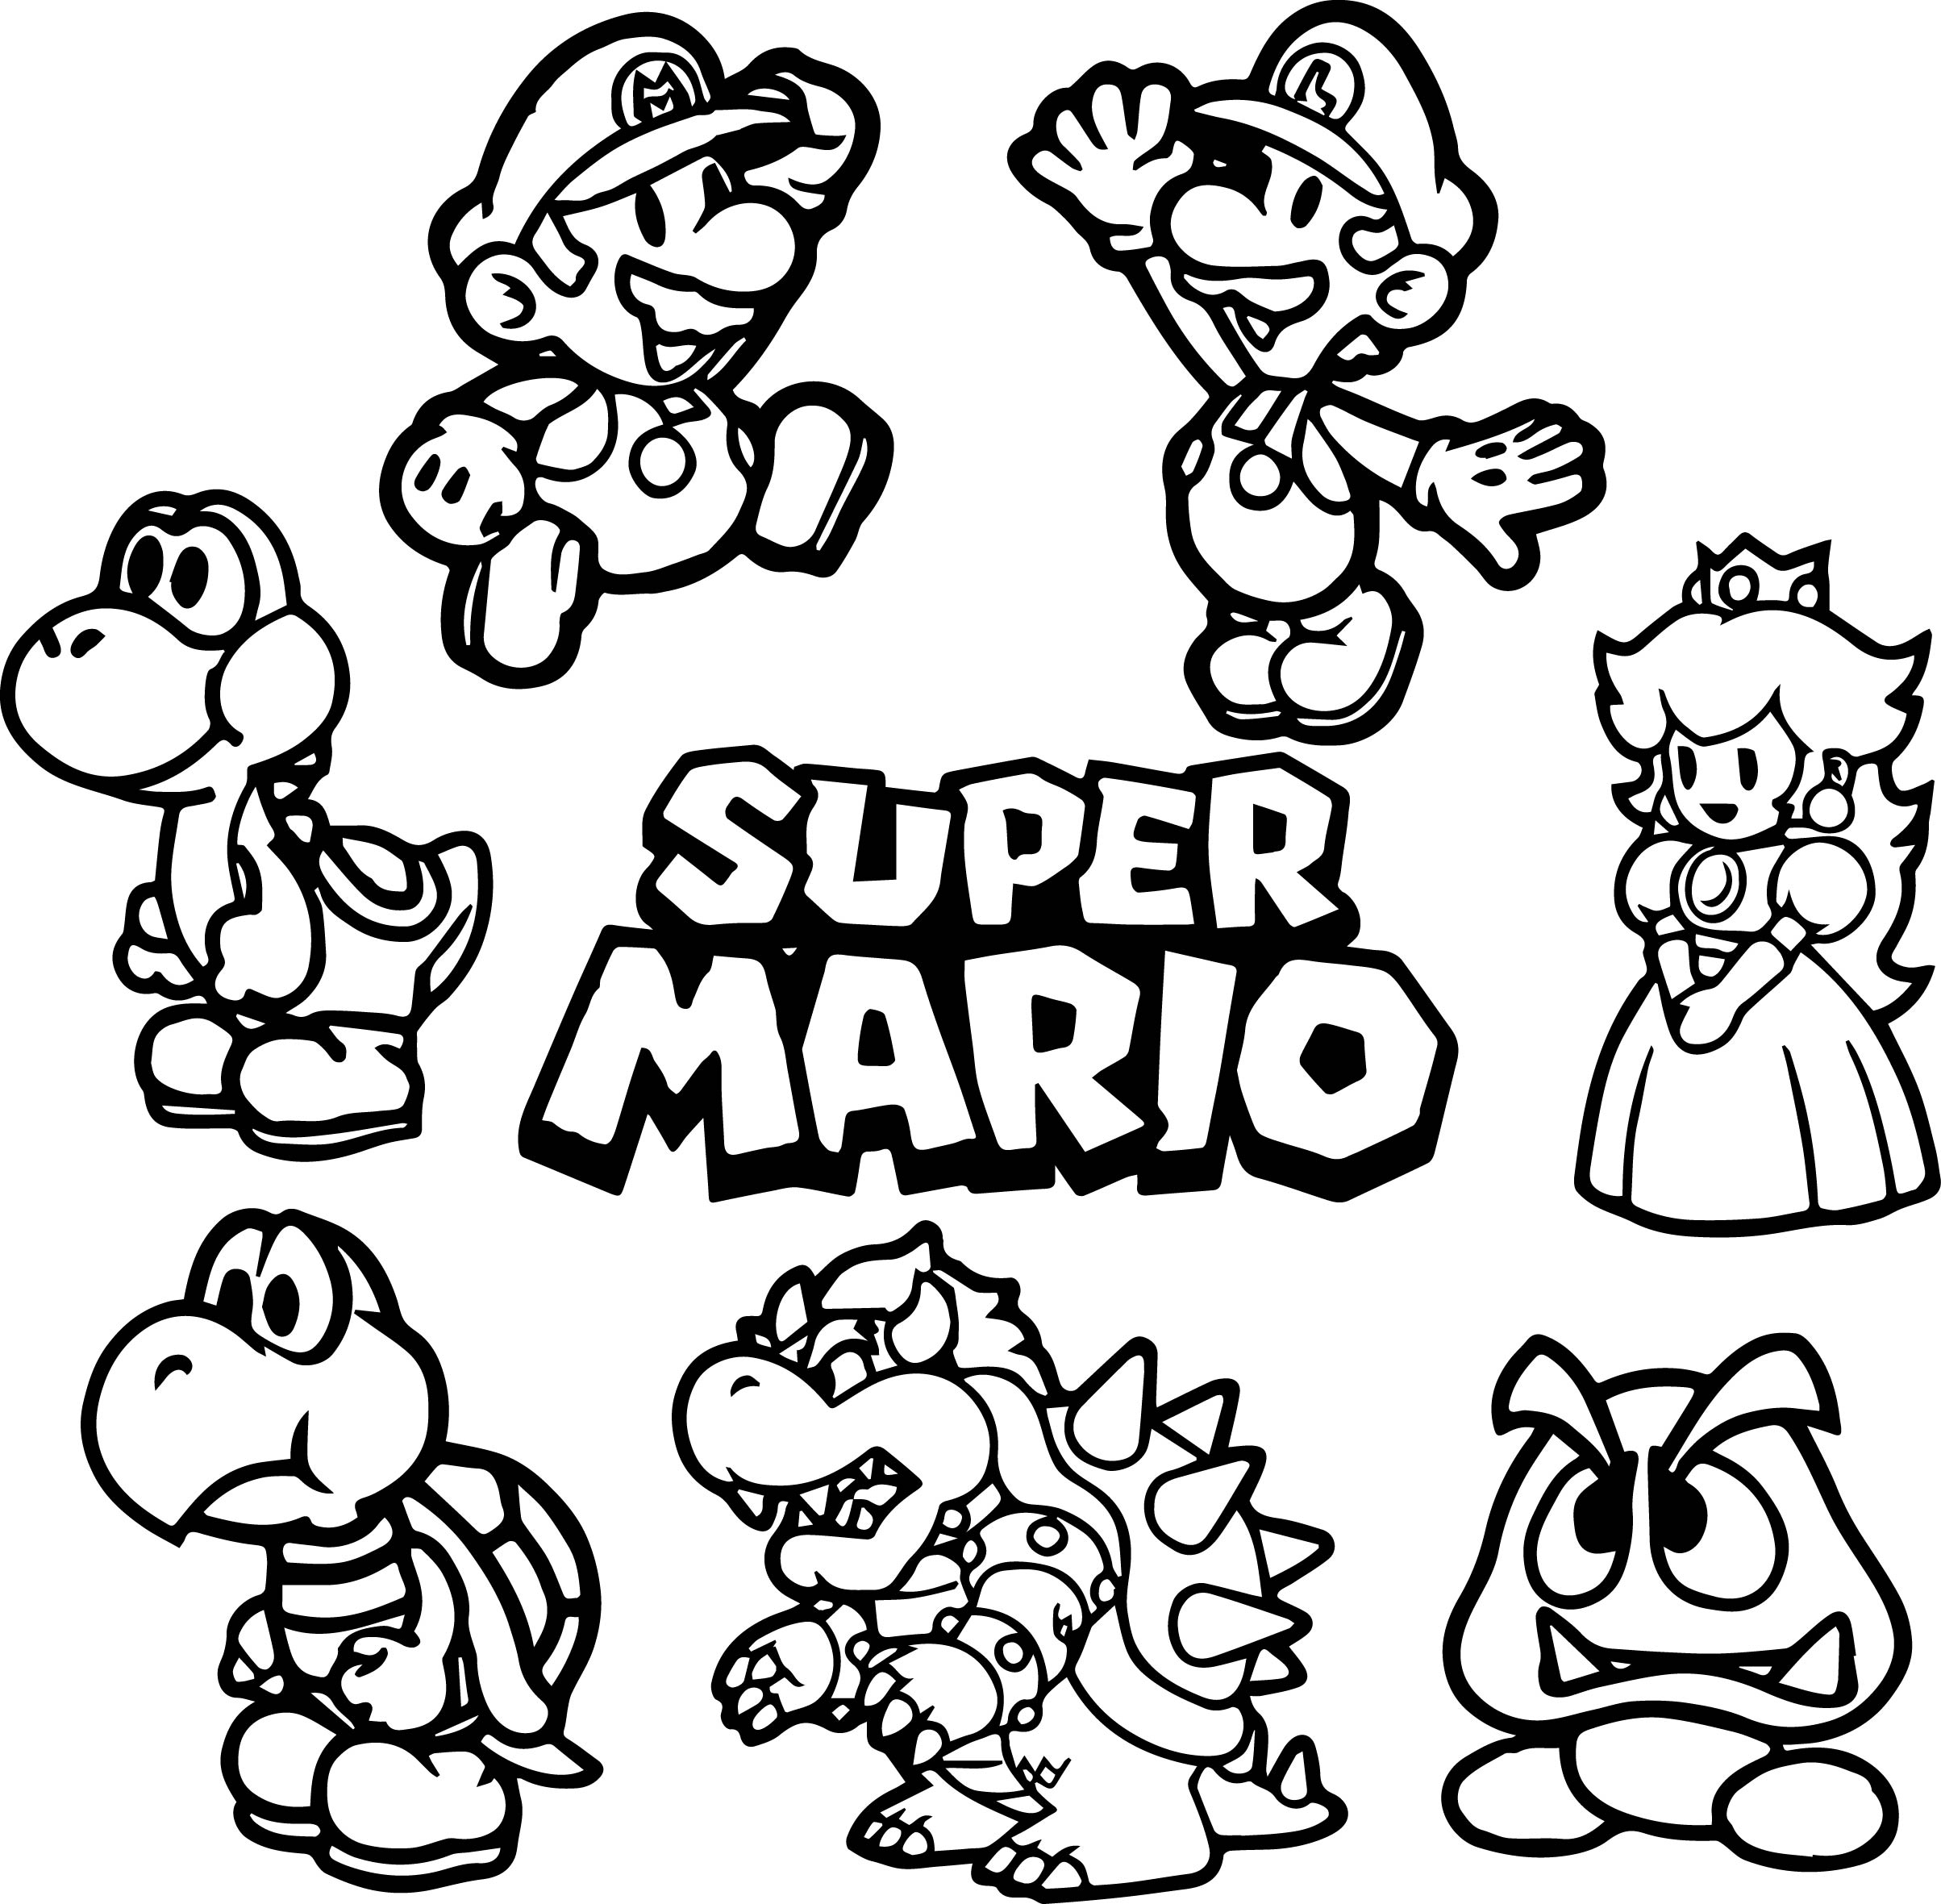 Super Mario Koopa Coloring Page Coloring Pages